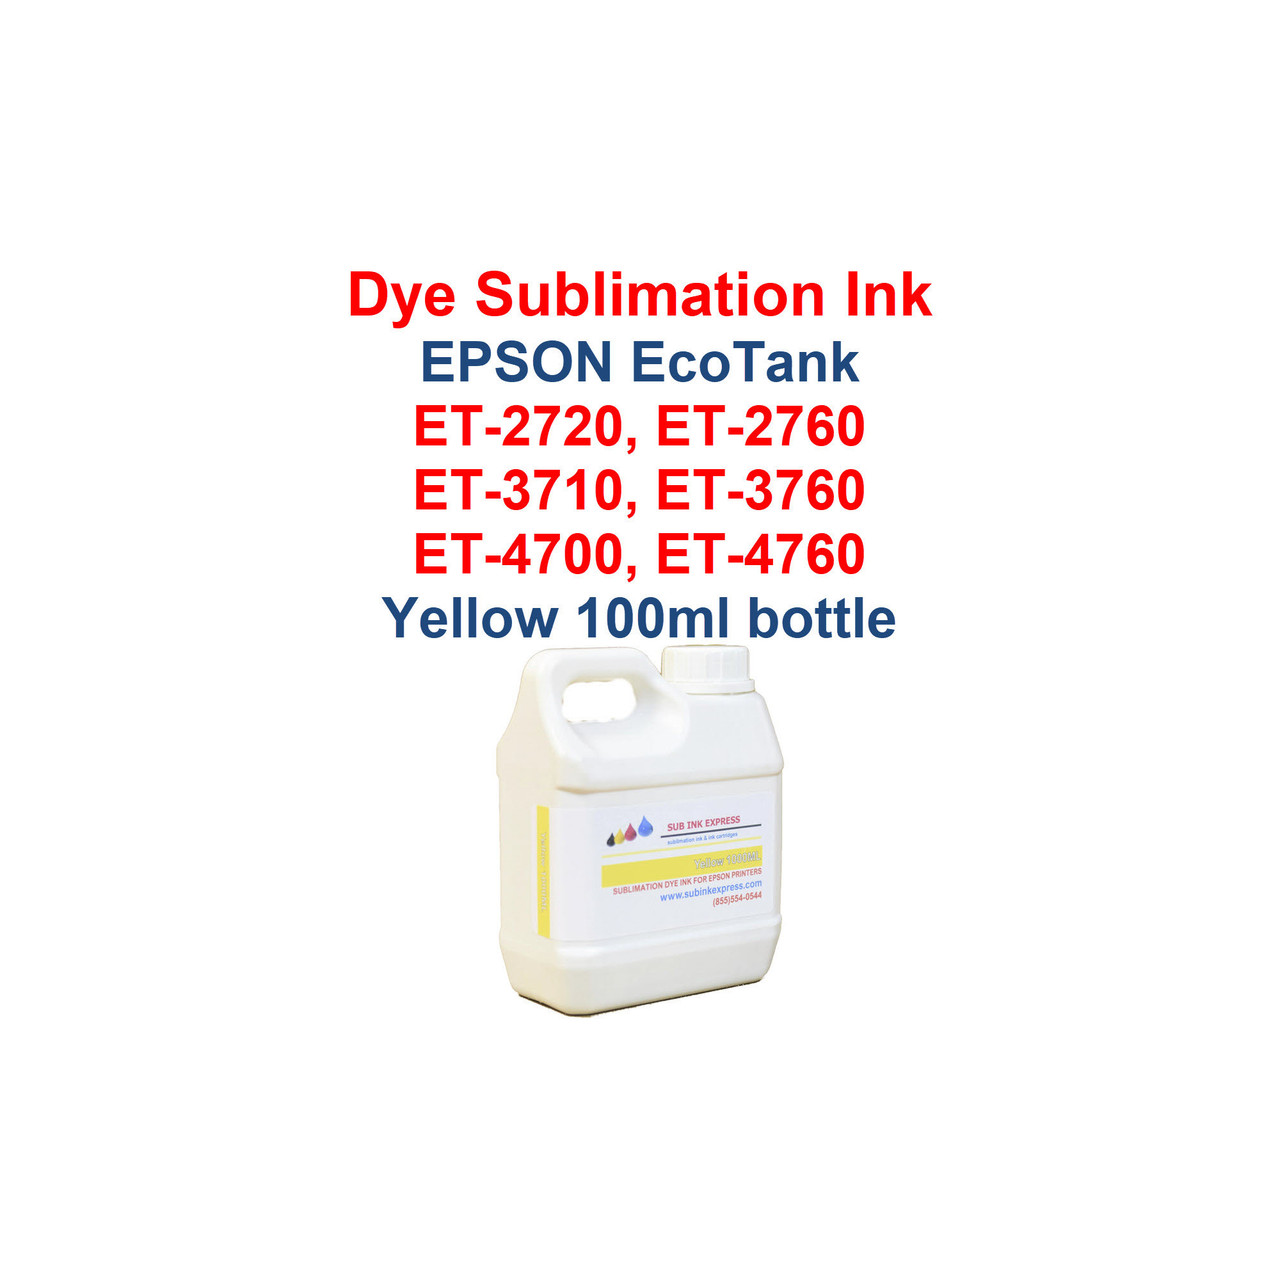 >>> Los Angeles same day delivery available (Contact us for pricing) <<<  Yellow - 1000ml bottle Dye Sublimation ink for Epson EcoTank et-2720 et-2760 et-3710 et-3760 et-4700 et-4760 printers  >>> This bottle size is for refilling the Epson bottles or our 70ml and 135ml bottles <<<  Package includes:  Yellow 1000ml bottle Dye Sublimation ink - 1 Yellow  Dye Sublimation Ink  Heat Transfer printing  T-Shirts, Hats, Metal, Ceramic, Mugs, Plates, etc...  Works with all substrates    No extra software  No color profiles needed